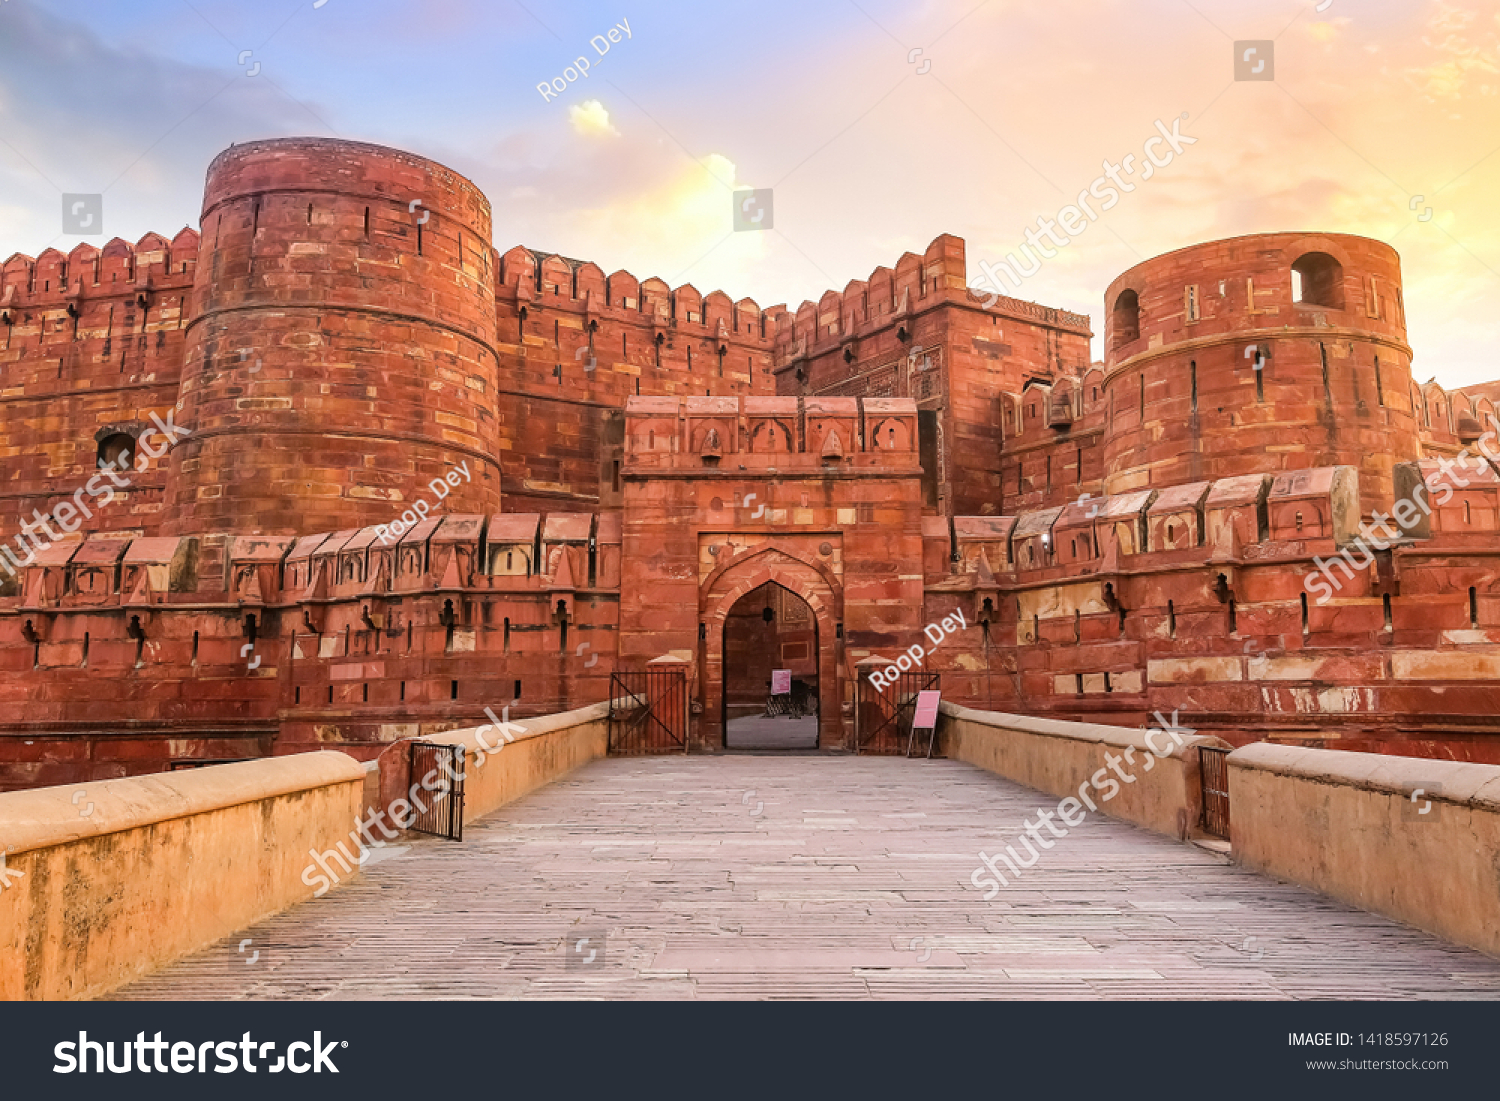 Agra Fort - Historic red sandstone fort of medieval India at sunrise. Agra Fort is a UNESCO World Heritage site in the city of Agra India. #1418597126